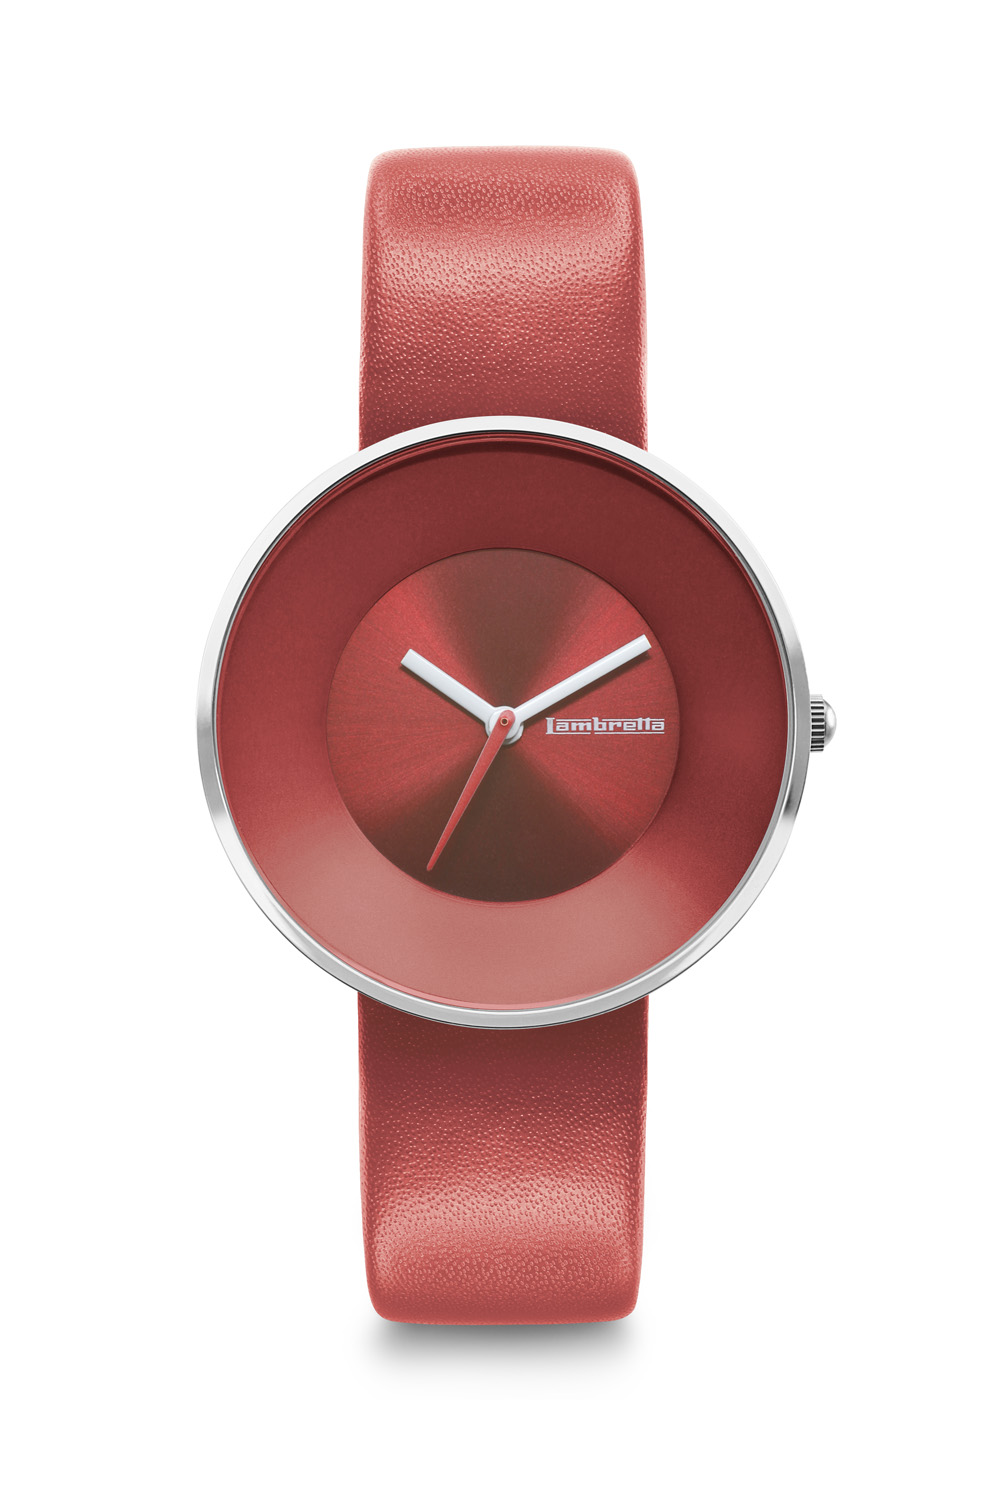 Lambretta Cielo 34 Fashion Leather Red 2201RED